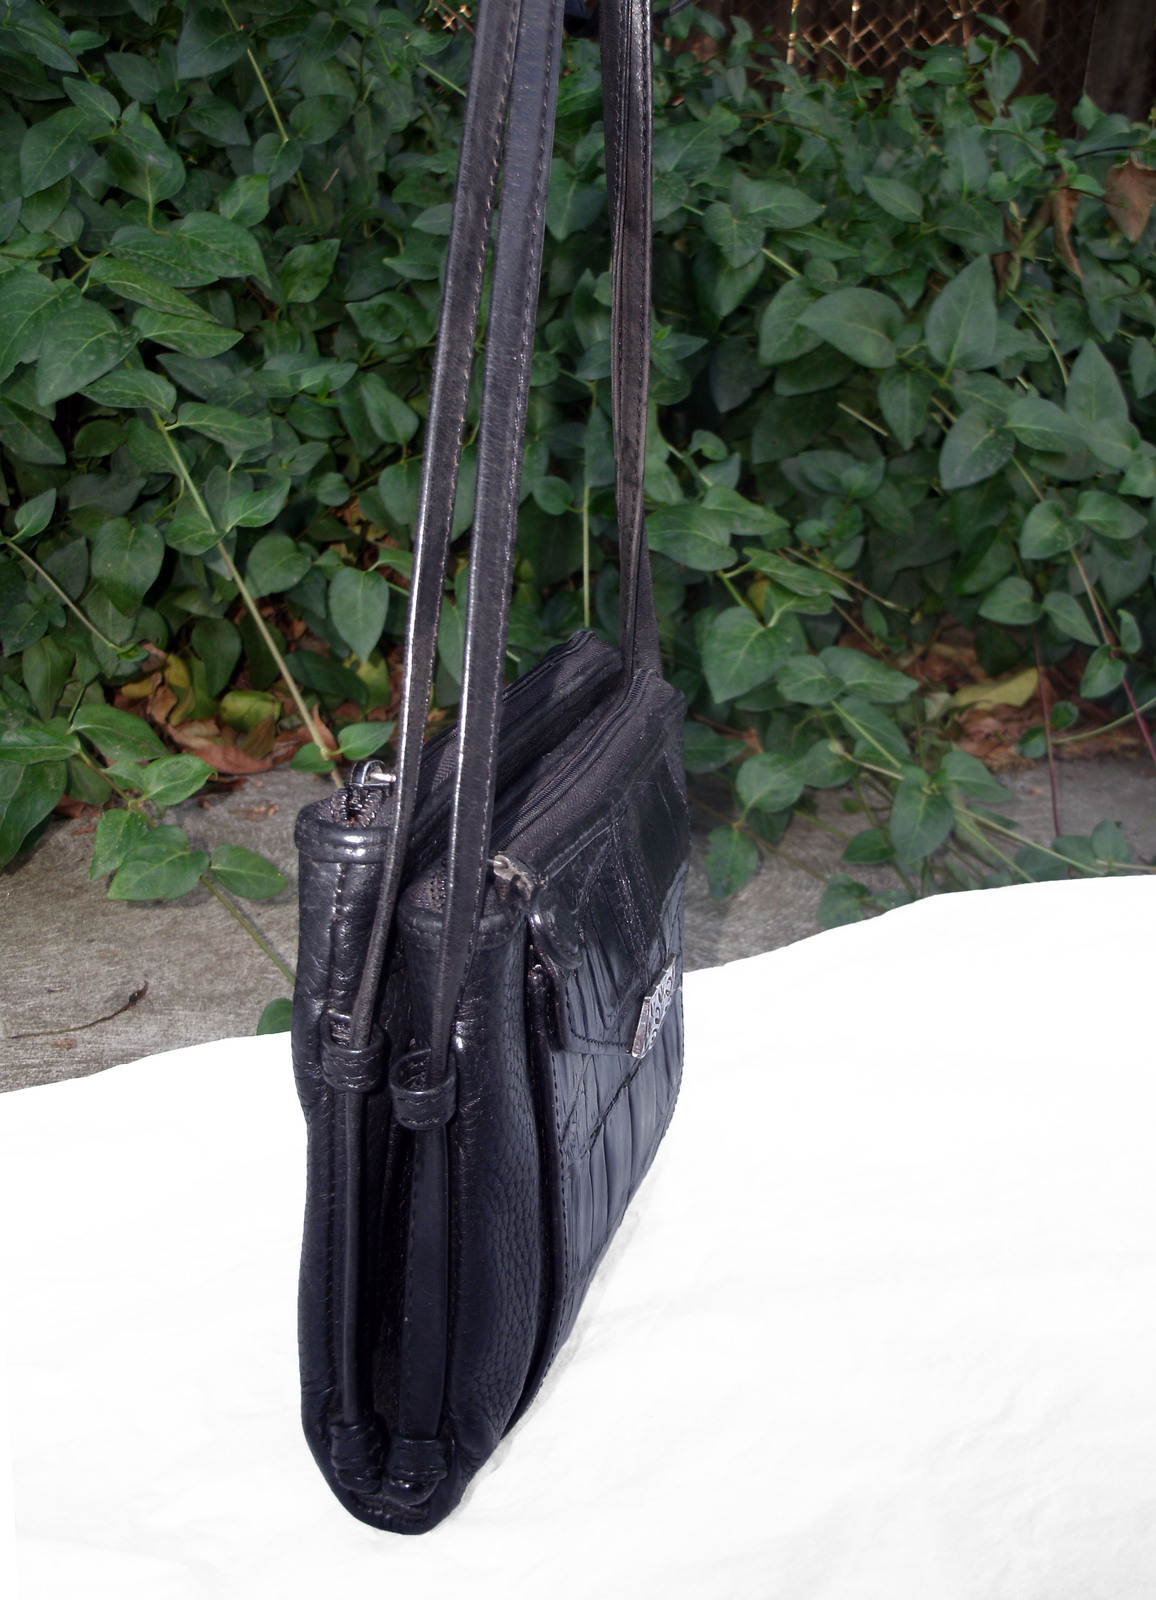 Brighton Croc and Pebbled Leather Cross Body Organizer Bag Black Silver Wallet image 5